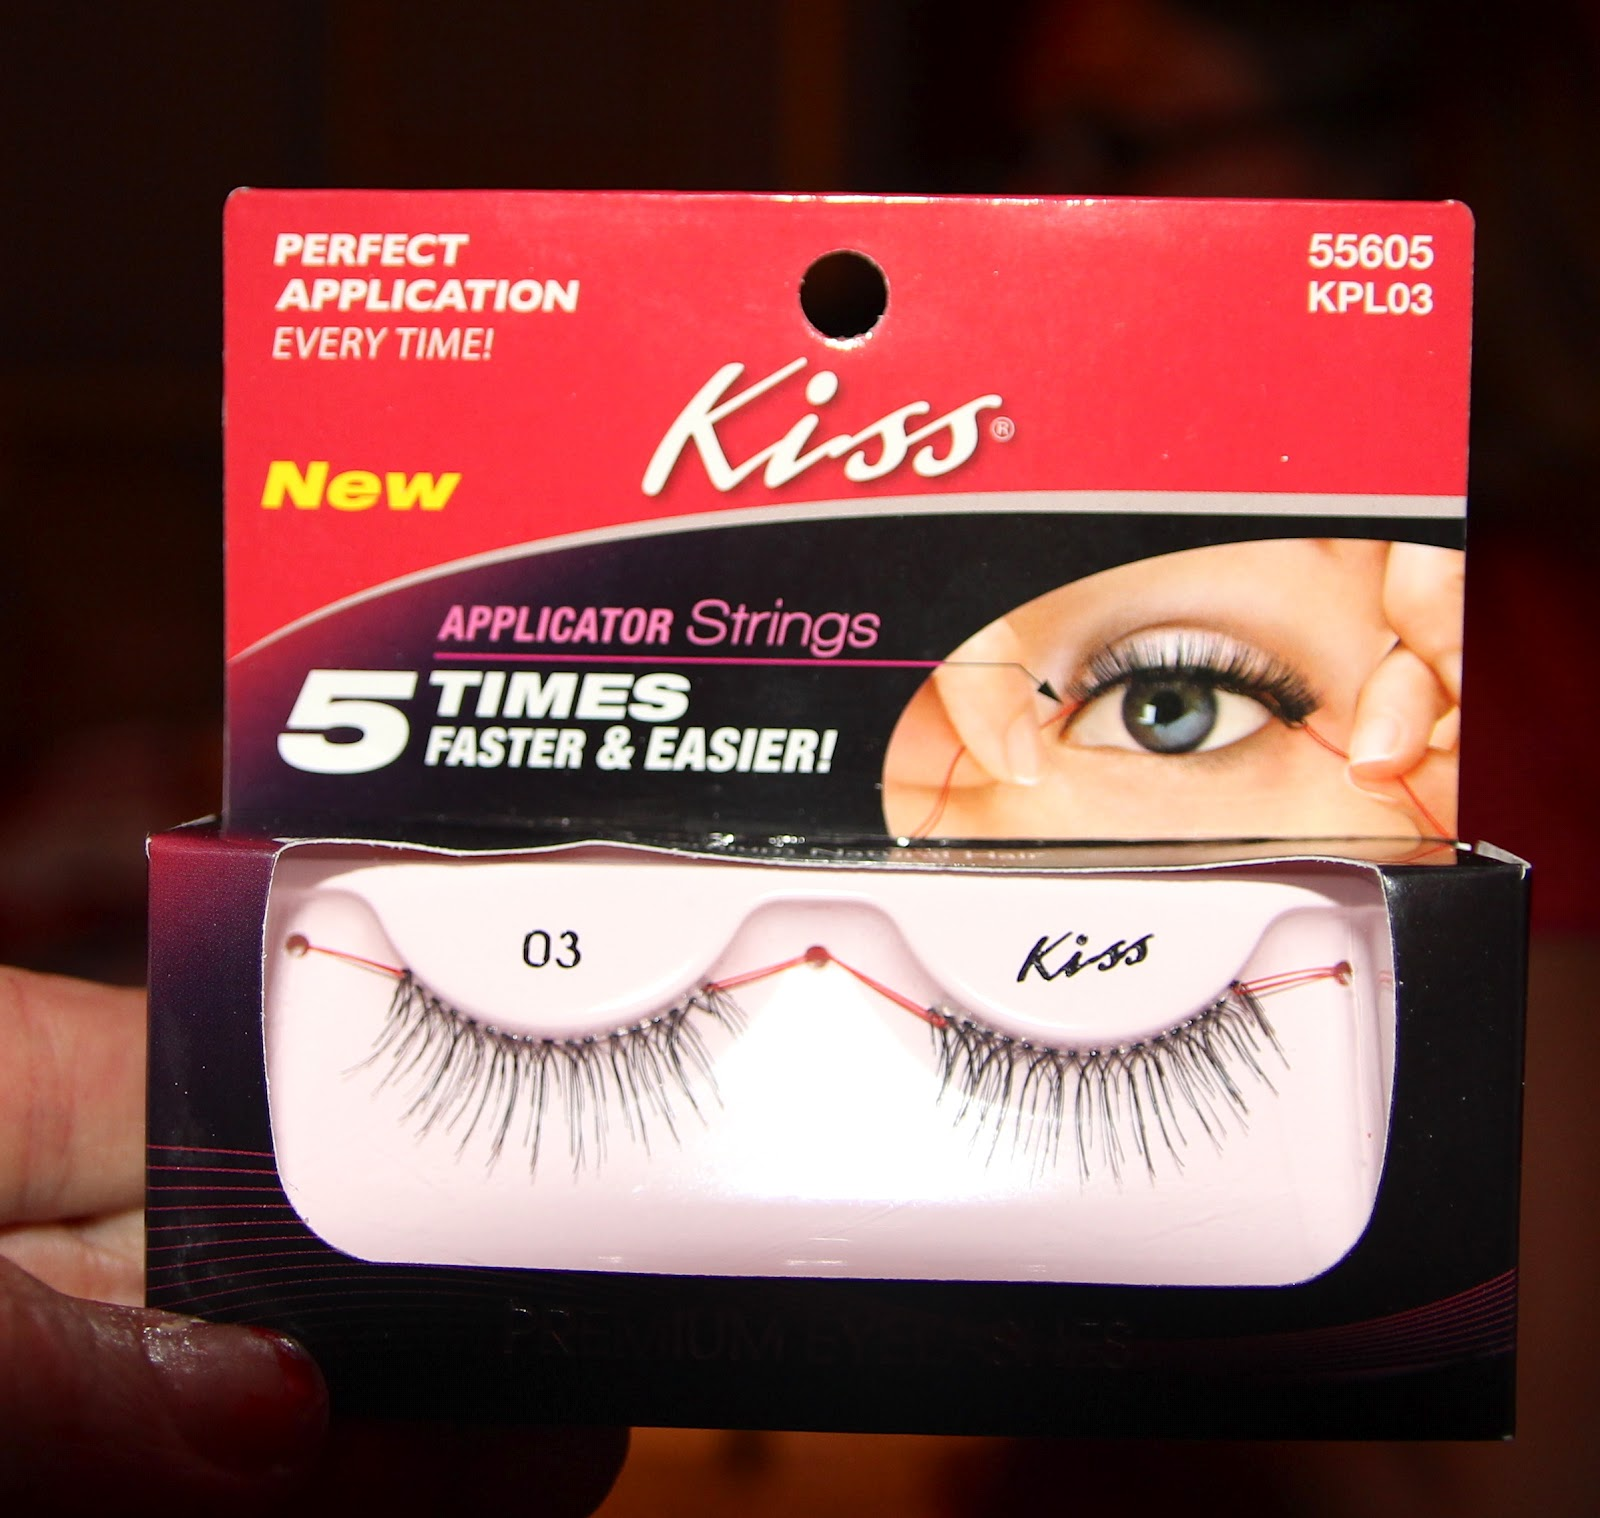 82bd379be76 AND---the most popular style of false eyelashes...easy to apply with that  string.